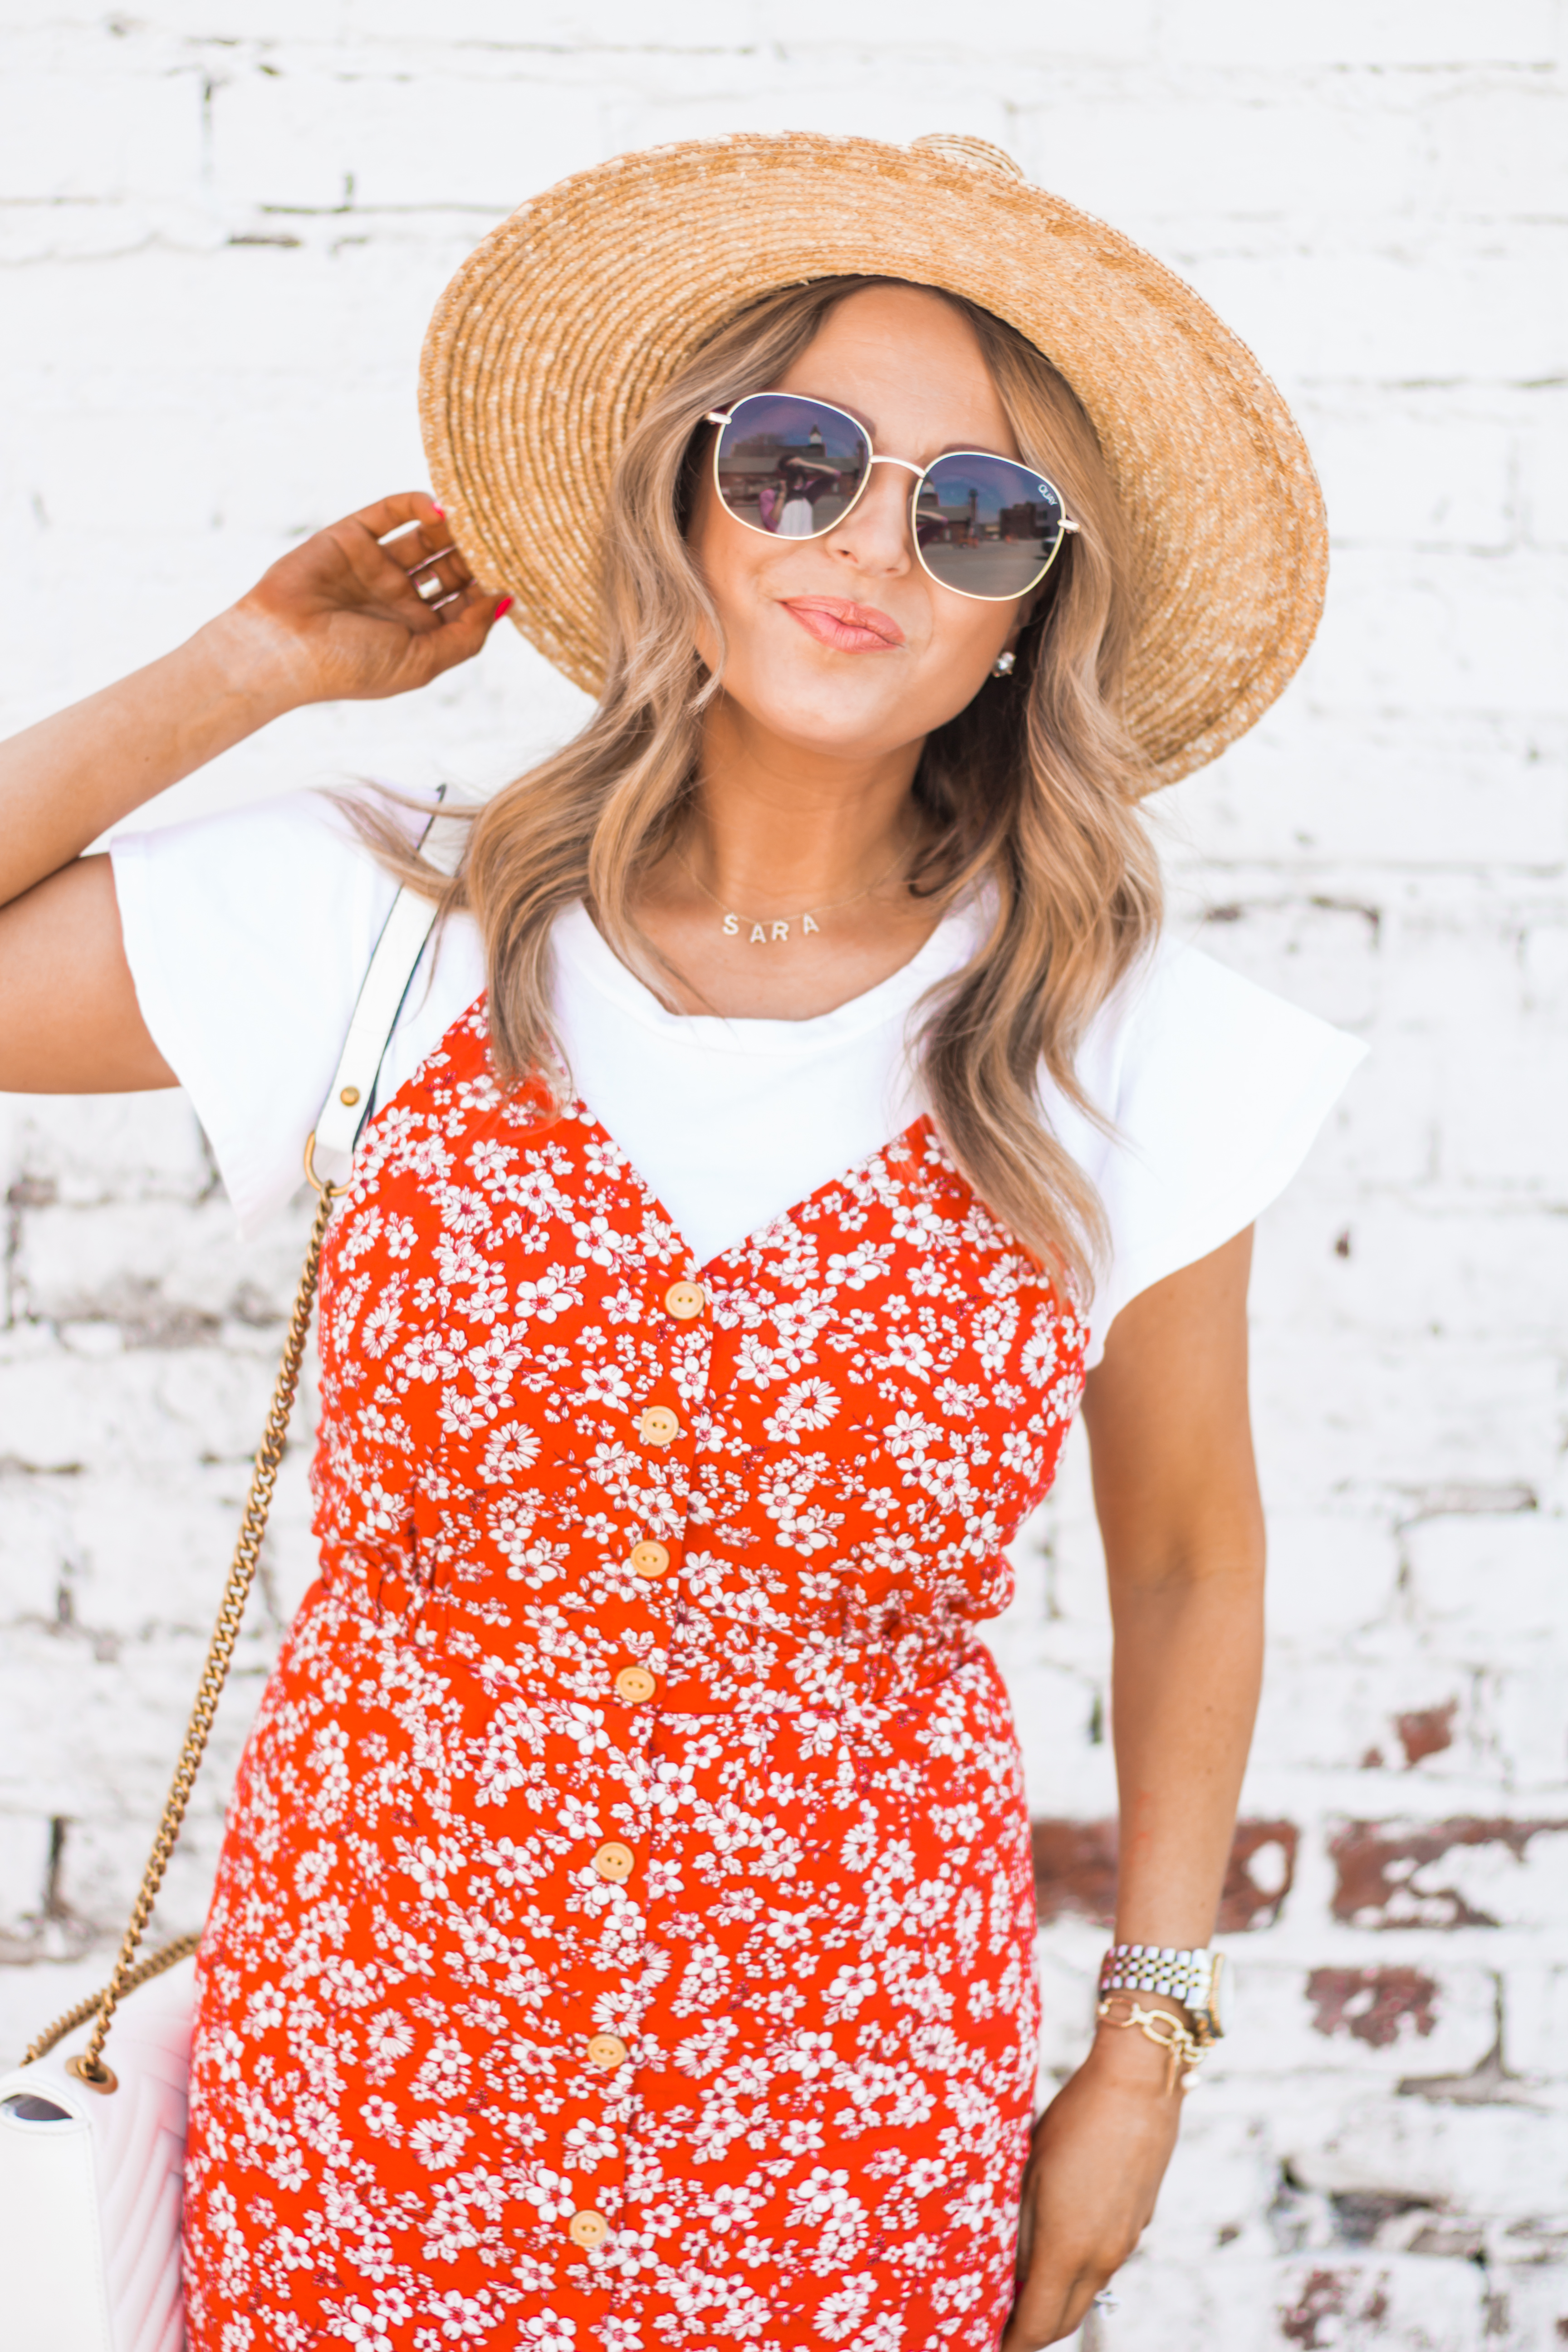 red-sundress-spring-summer-dress-floral dress-women's fashion- spring fashion-summer fashion-brixton hat-white booties-Omaha blogger-sabby style-3